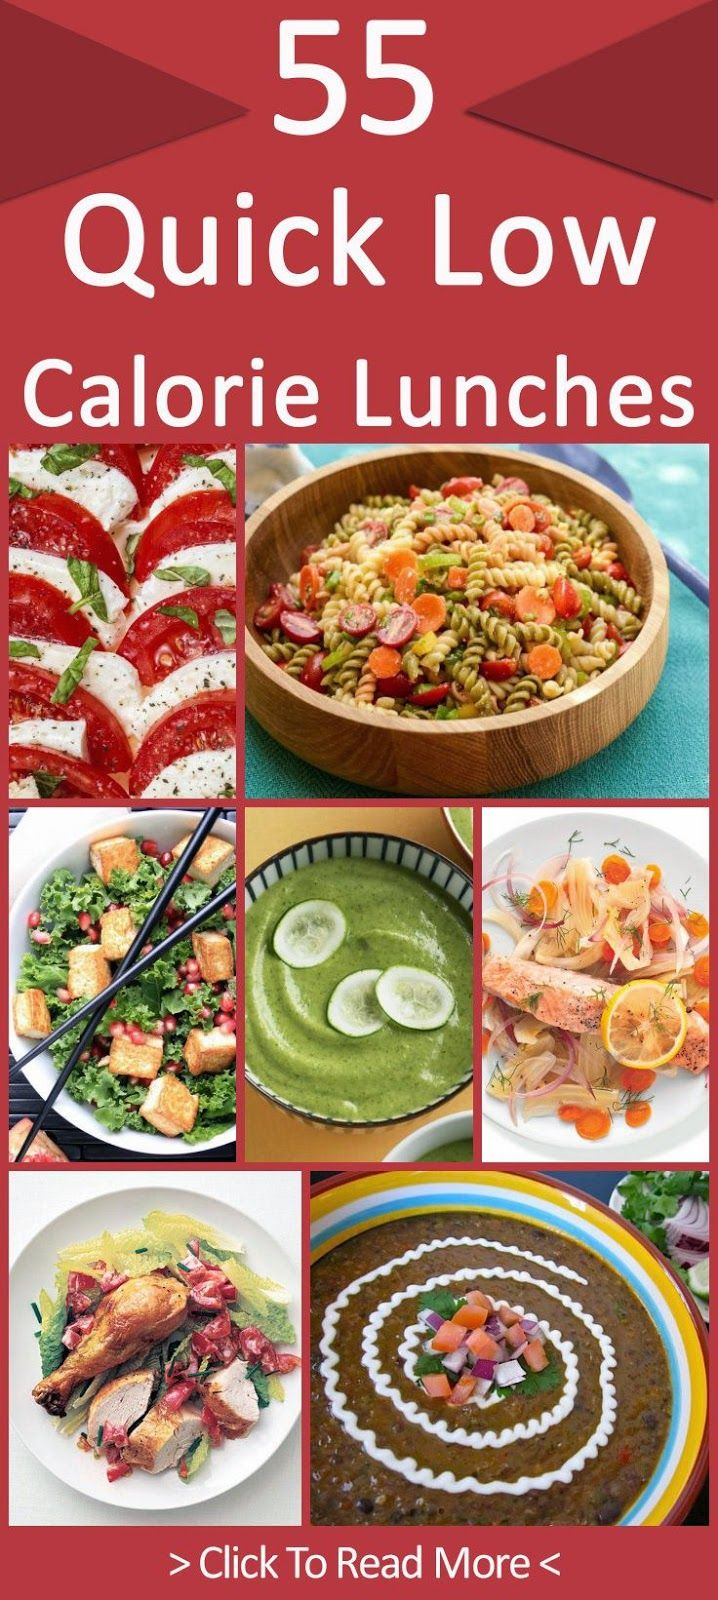 55 quick low calorie lunches best recipes ever diet food detox 55 quick low calorie lunches best recipes ever 300 calorie luncheslow calorie smoothieshealthy indian foodindian forumfinder